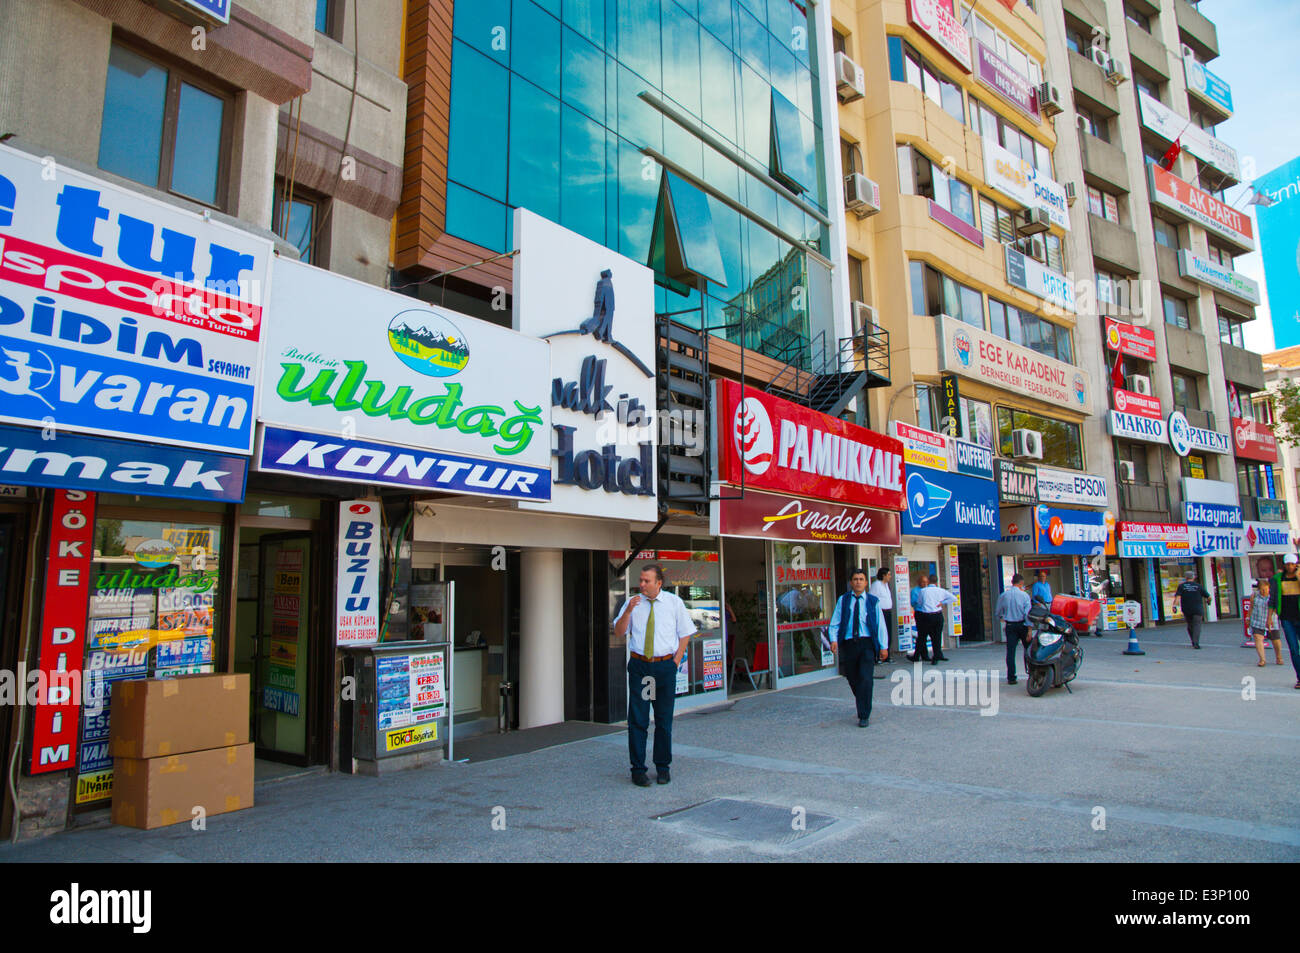 9 Eulül Myd square where many bus companies have offices, central Izmir, Turkey, Asia Minor - Stock Image